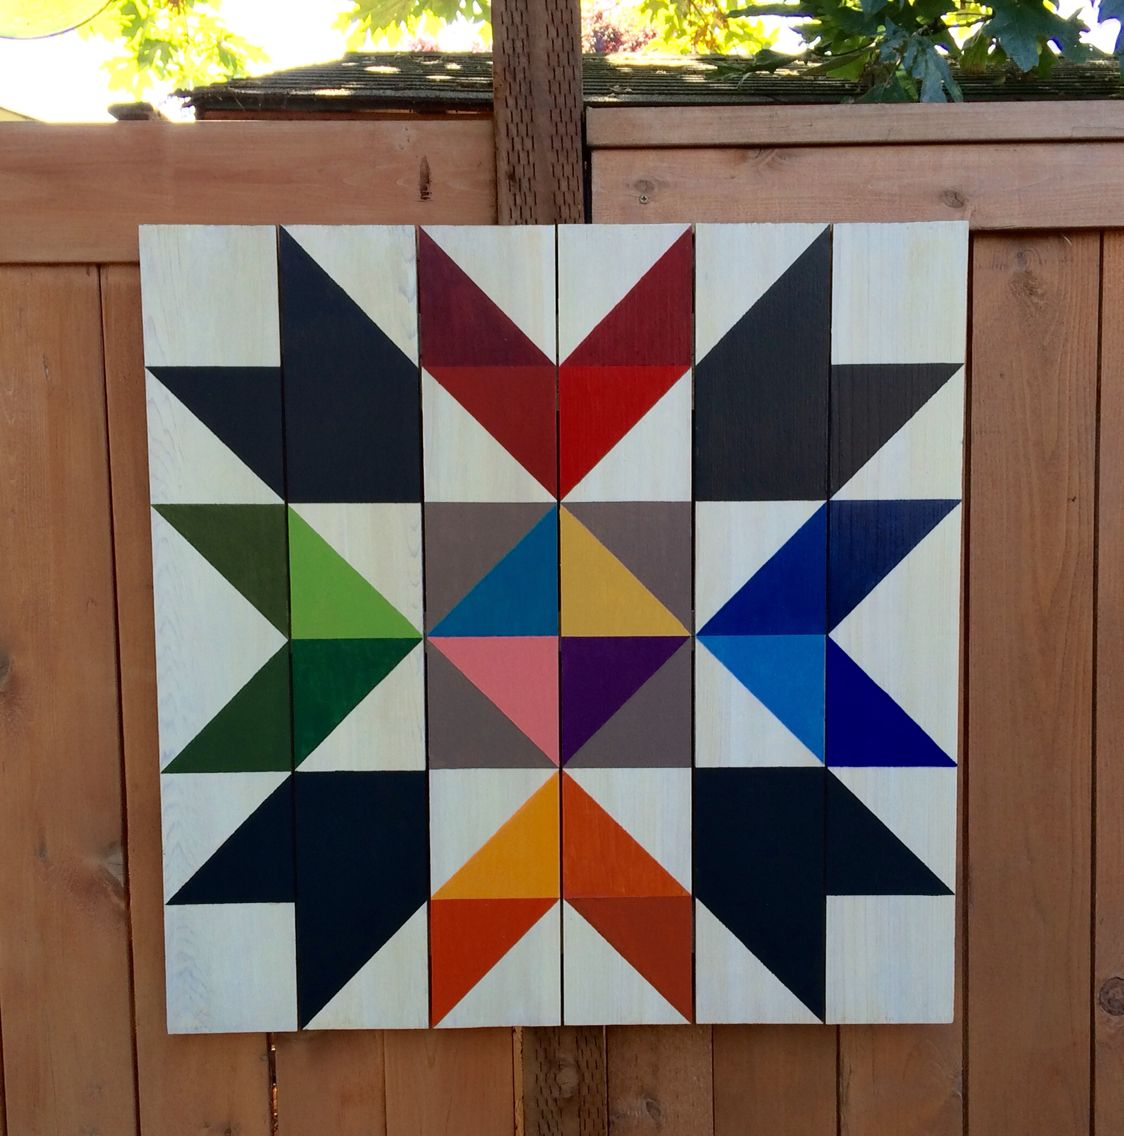 Barn Quilts By Chela Arrows Barn Quilts Pinterest Barn